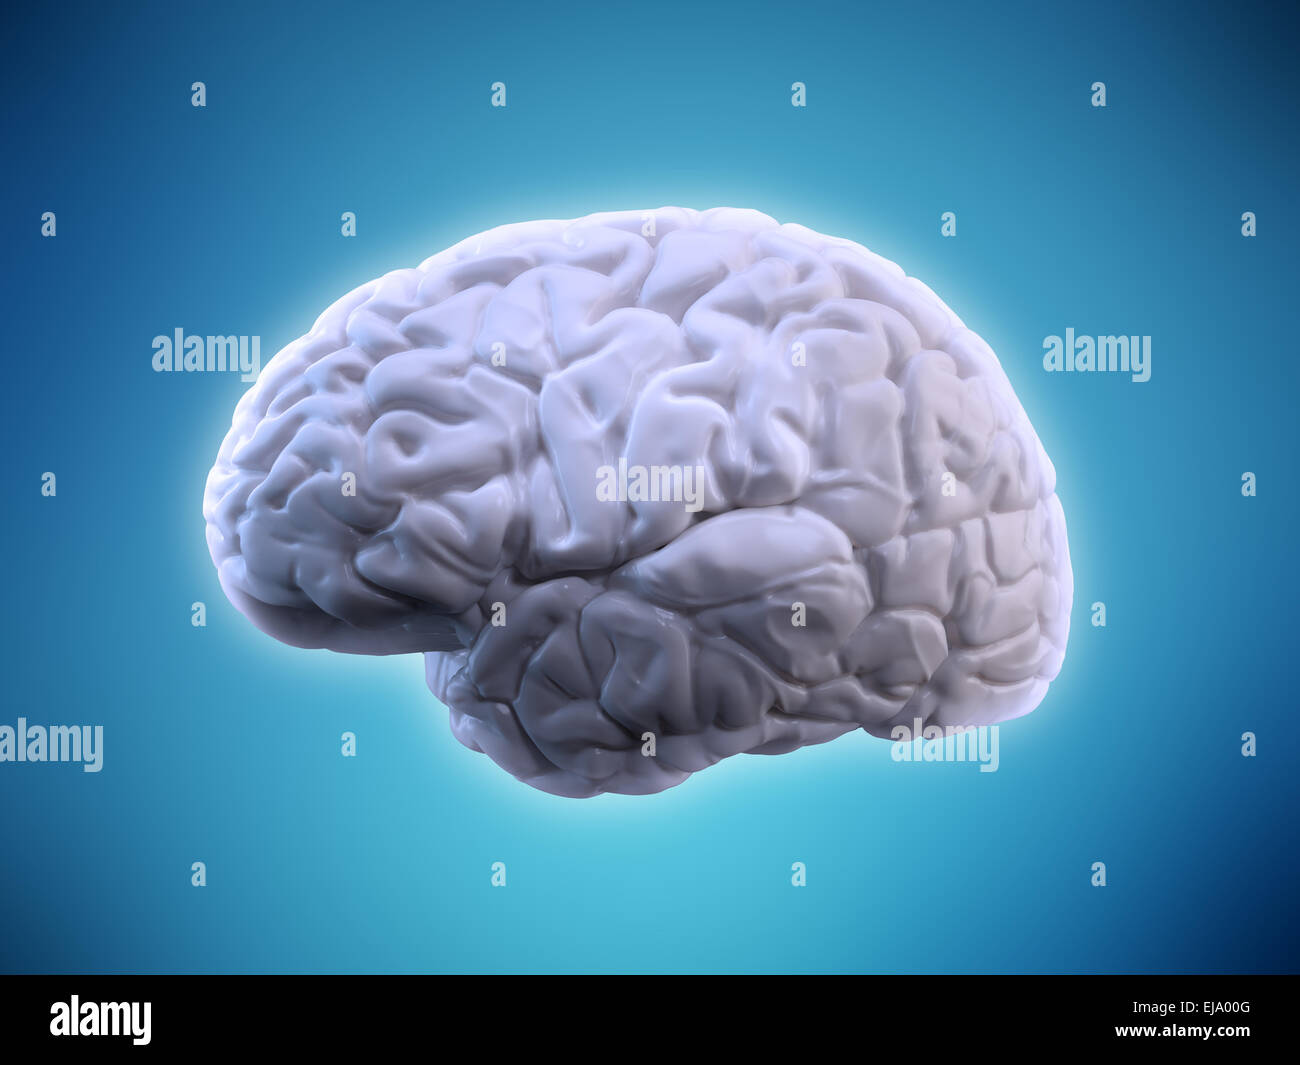 Human brain illustration - human anatomy - Stock Image